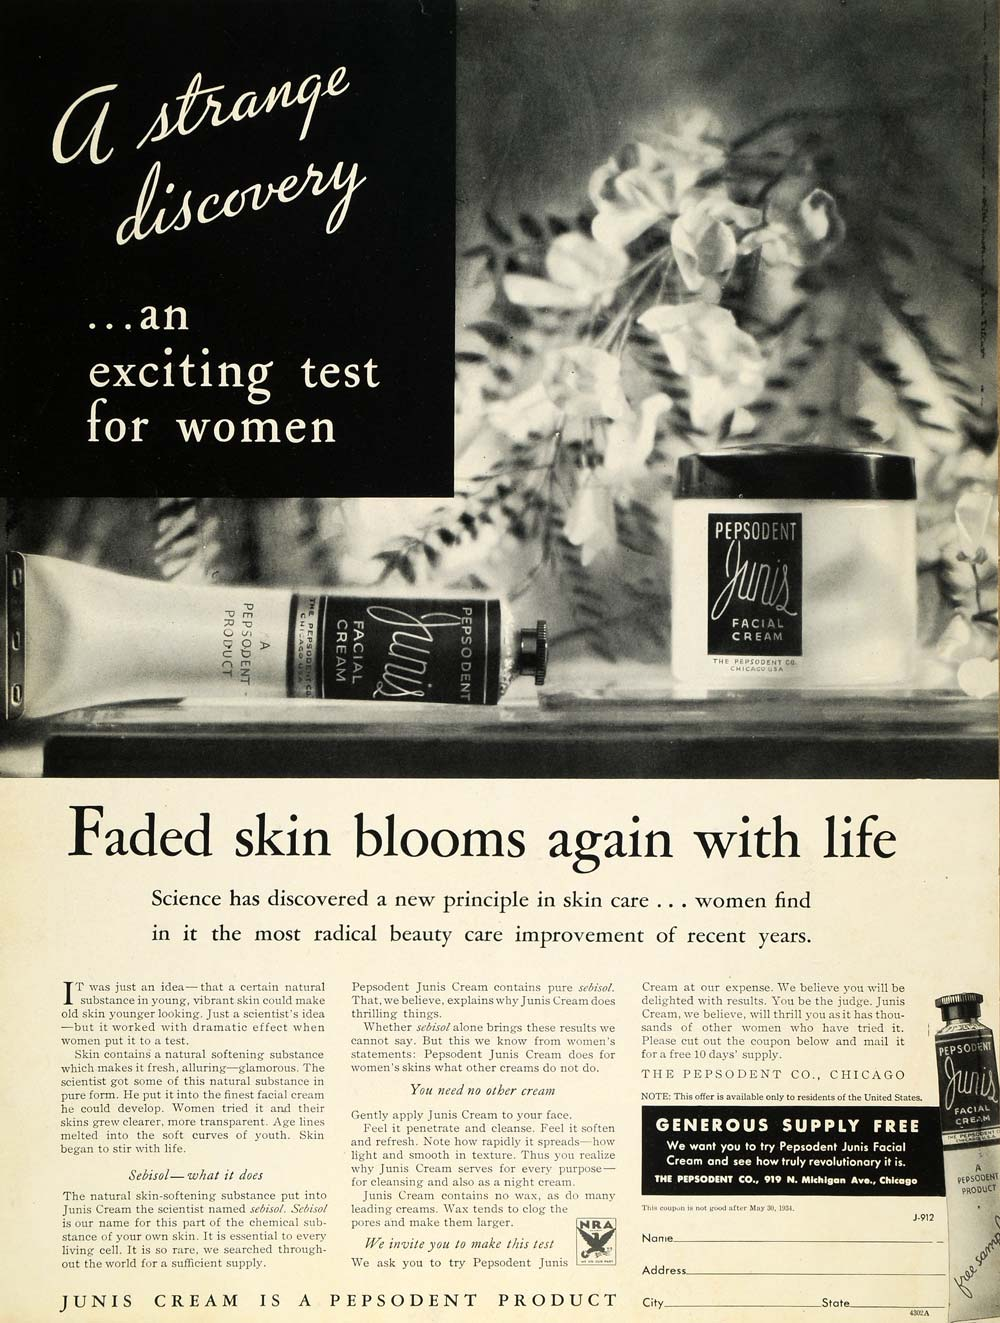 1933 Ad Pepsodent Junis Facial Cream Complexion Skin - ORIGINAL ADVERTISING MCC4